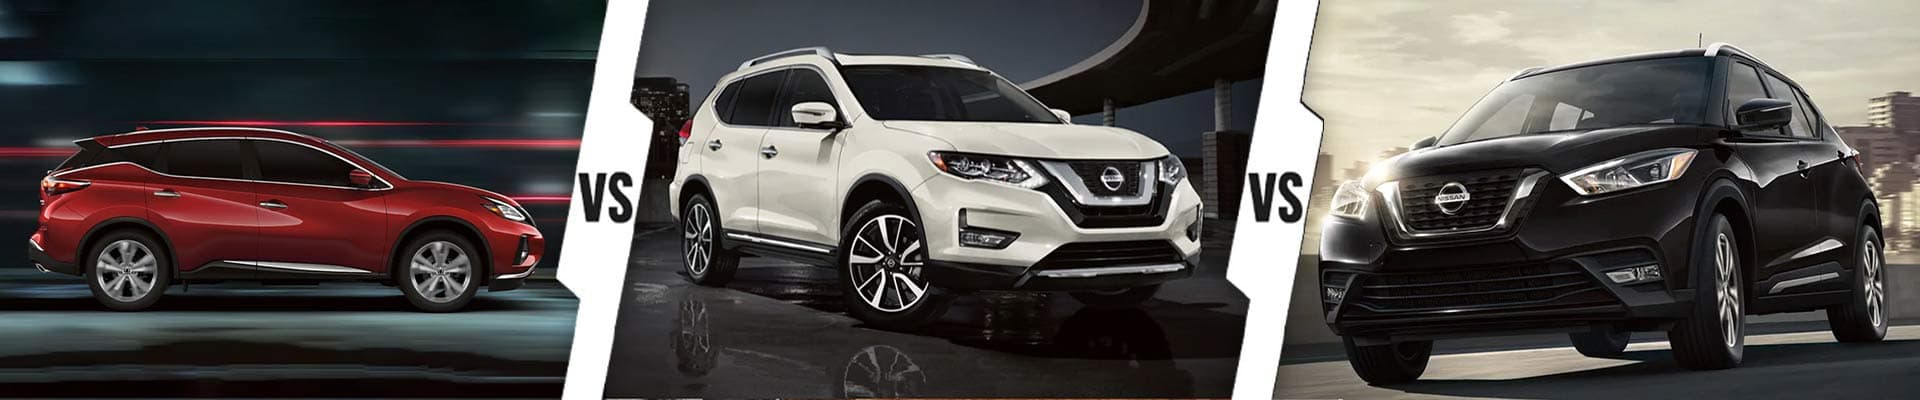 Nissan Crossovers: 2020 Nissan Murano Vs. 2020 Nissan Rogue Vs. 2020 Nissan Kicks